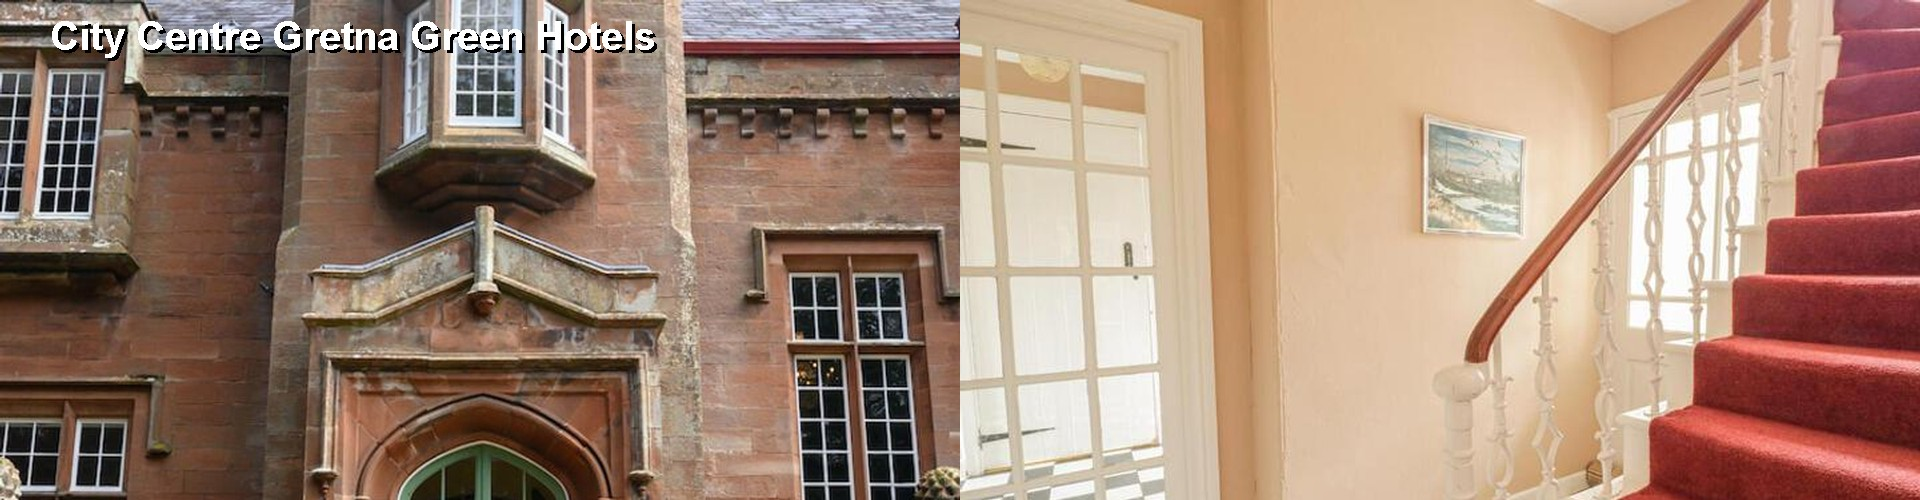 5 Best Hotels near City Centre Gretna Green